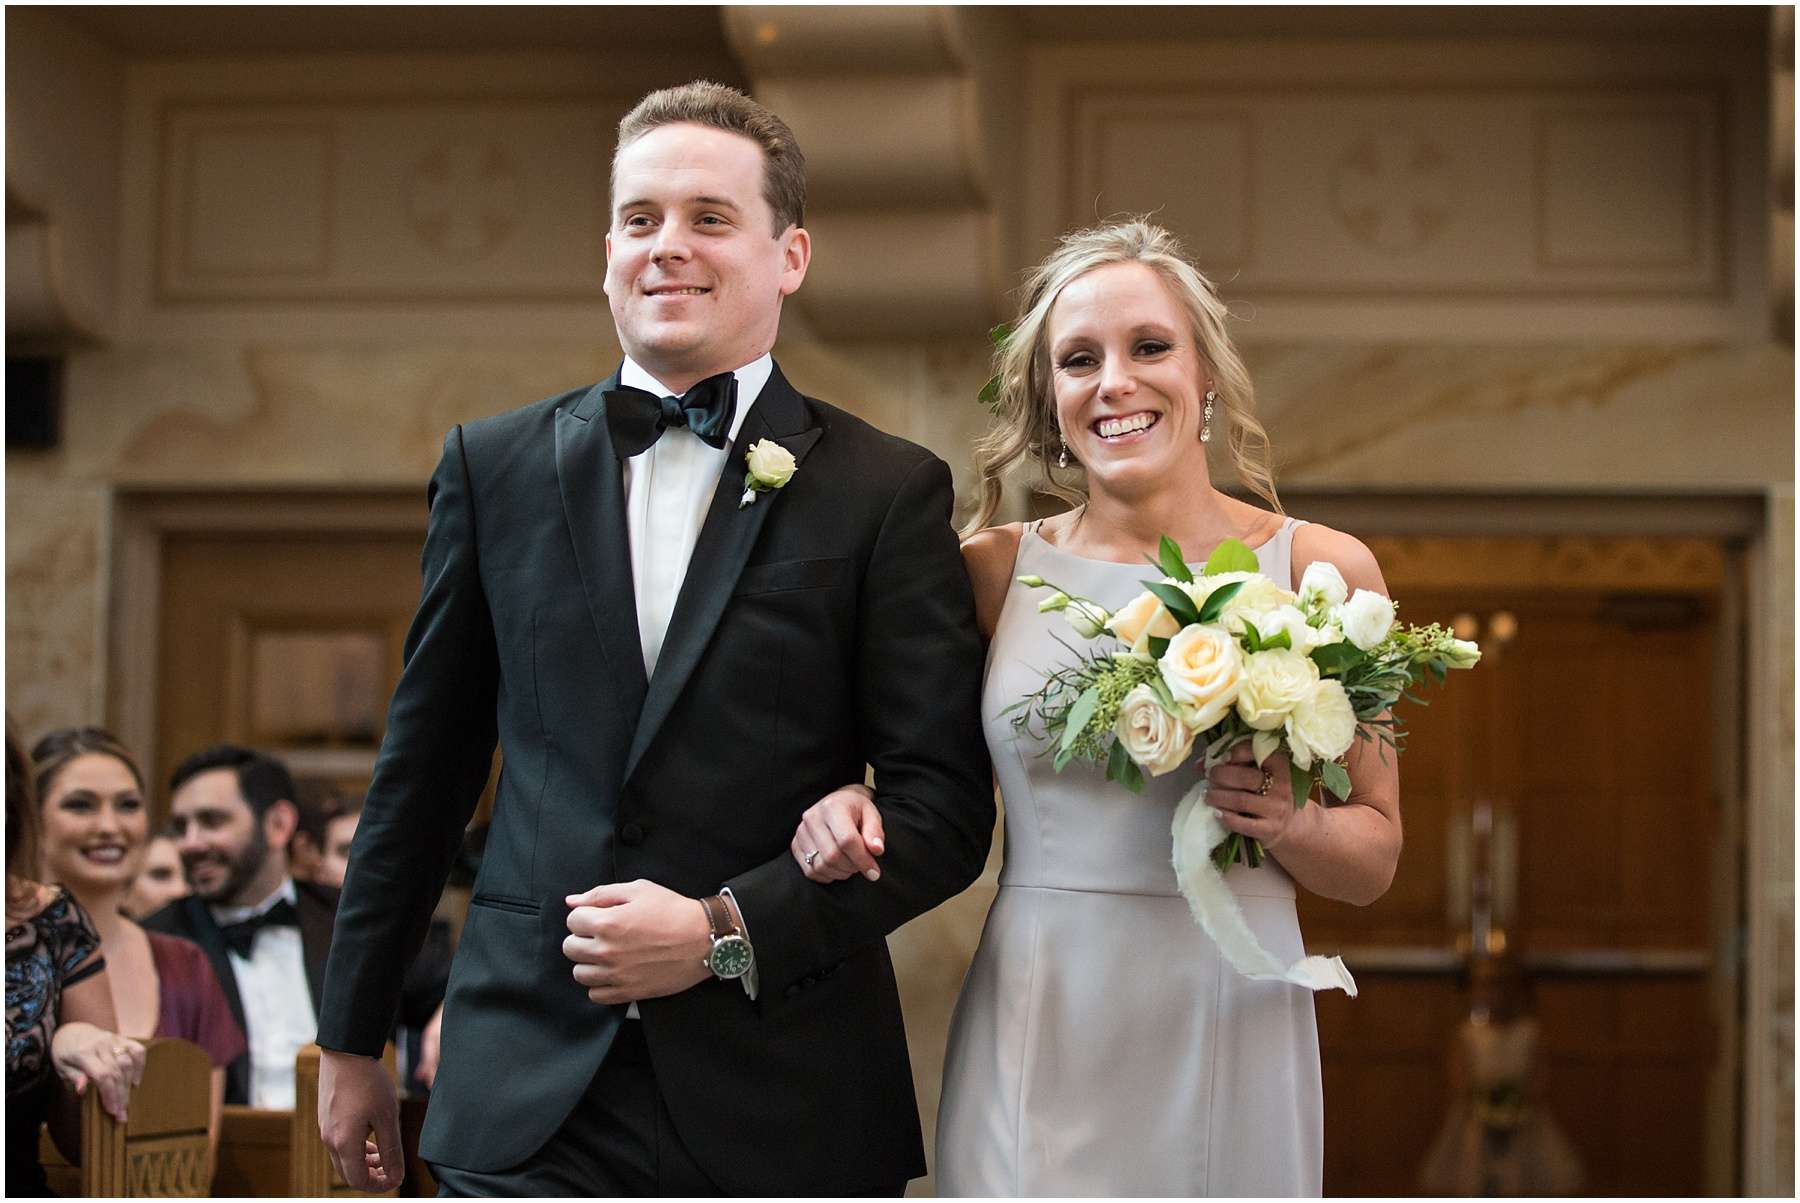 Wedding at the Ohio Statehouse | Columbus Ohio Weddings 70